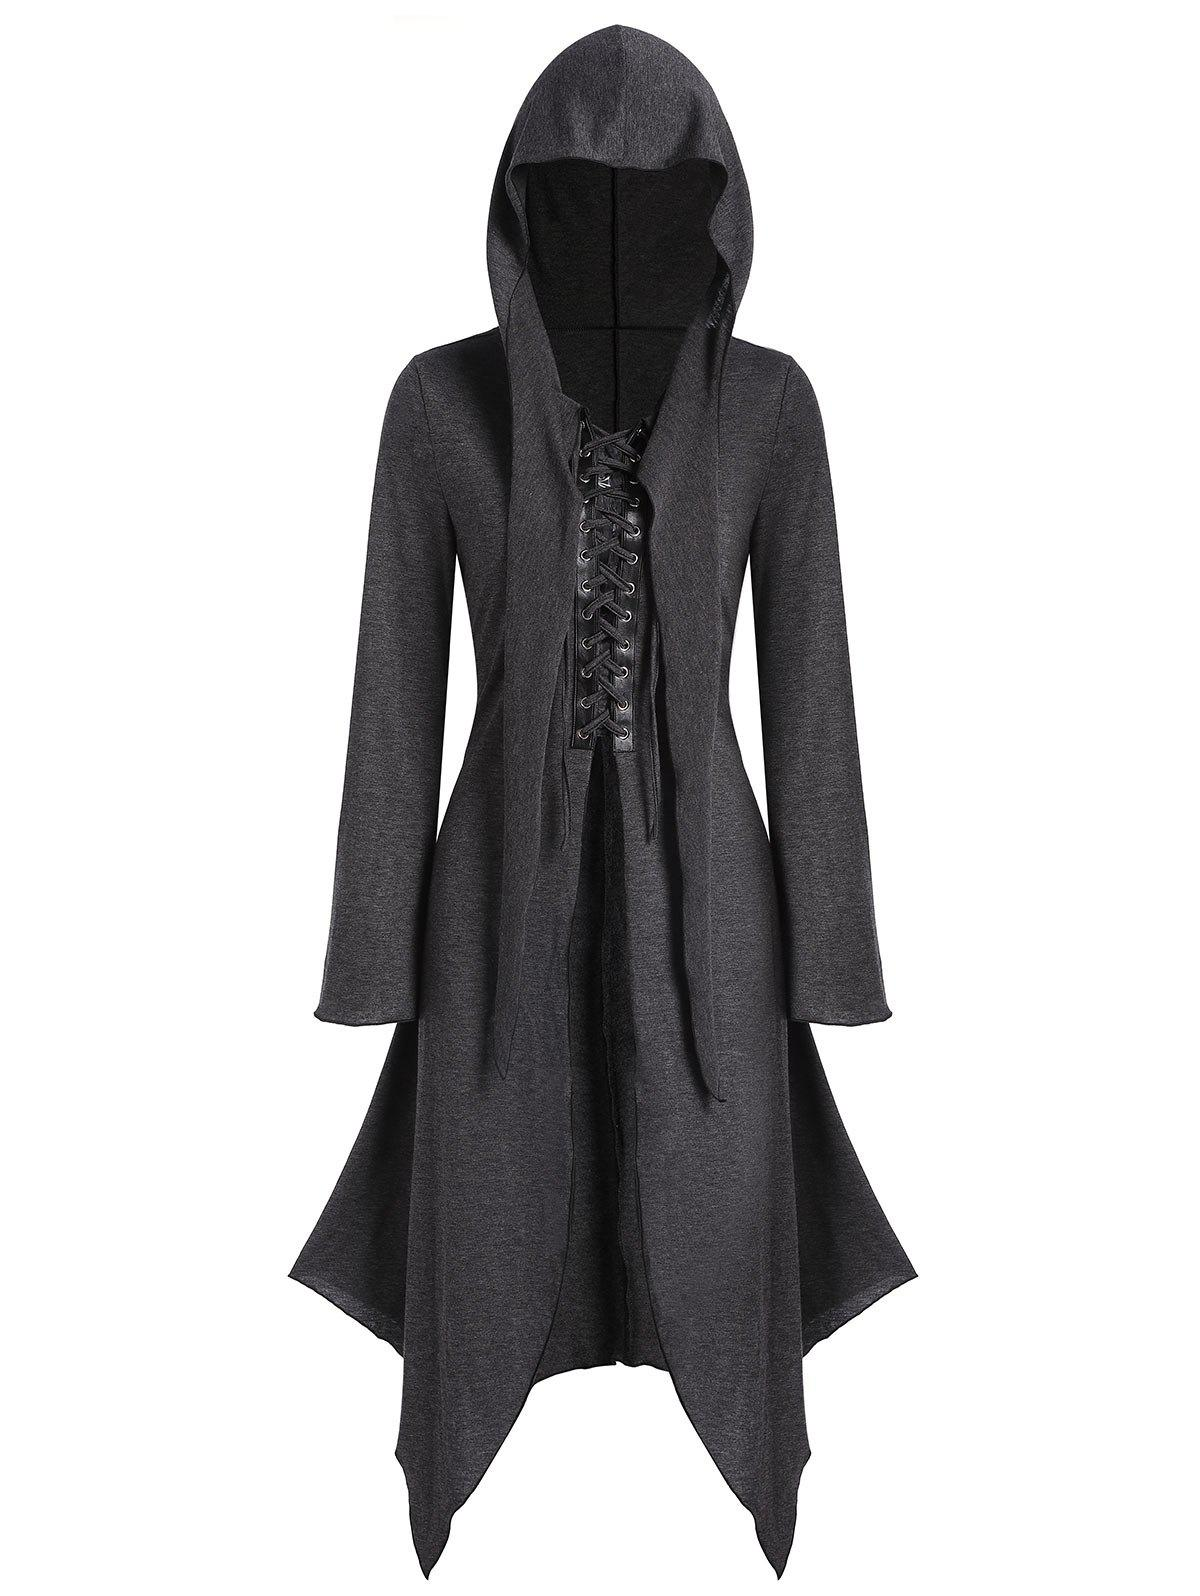 Latest Lace-up Front Hooded Heathered Handkerchief Gothic Coat